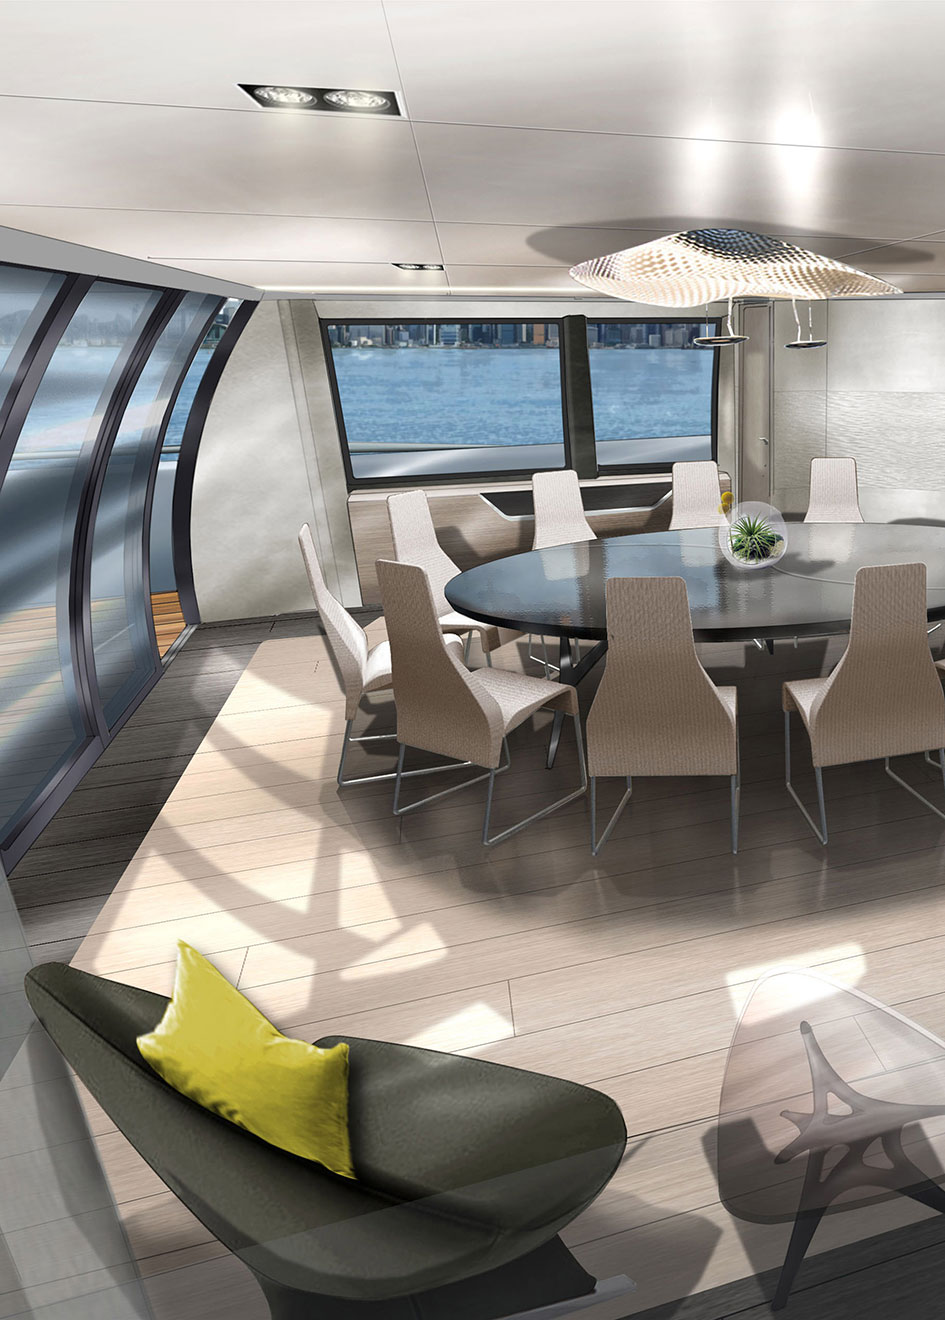 the-dining-area-of-the-mcconaghy-mc155-trimaran-concept